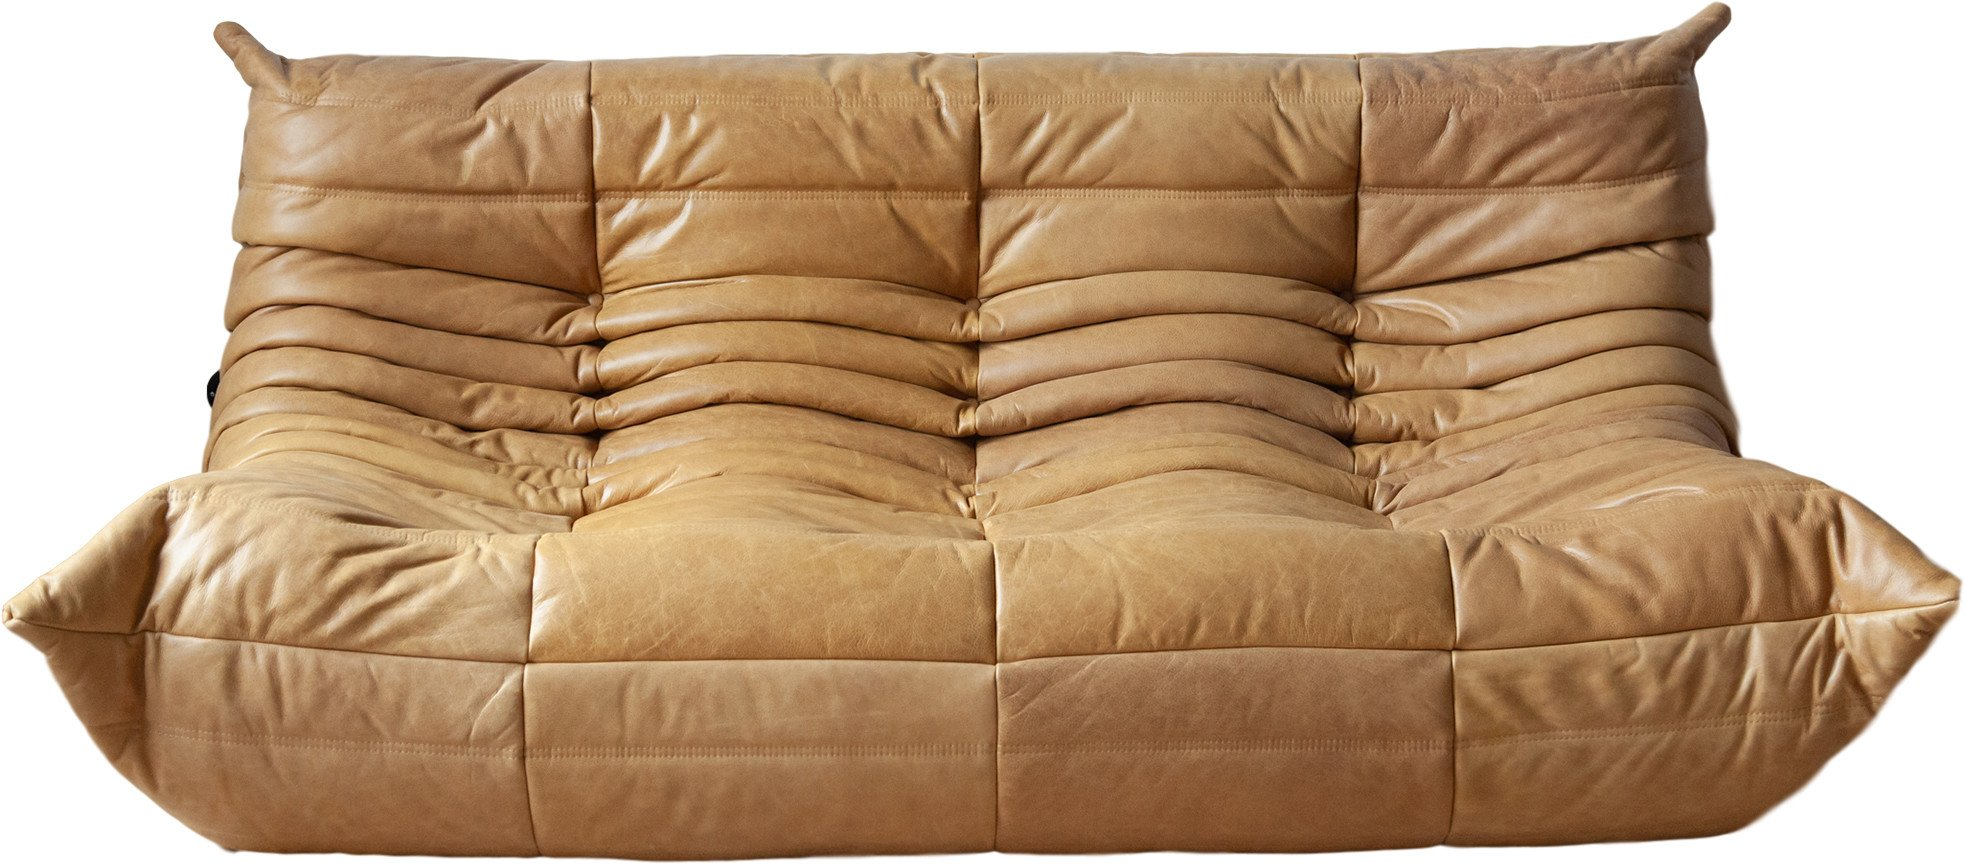 Togo sofa in Camel Brown Leather by M. Ducaroy, Ligne Roset, France, 1970s